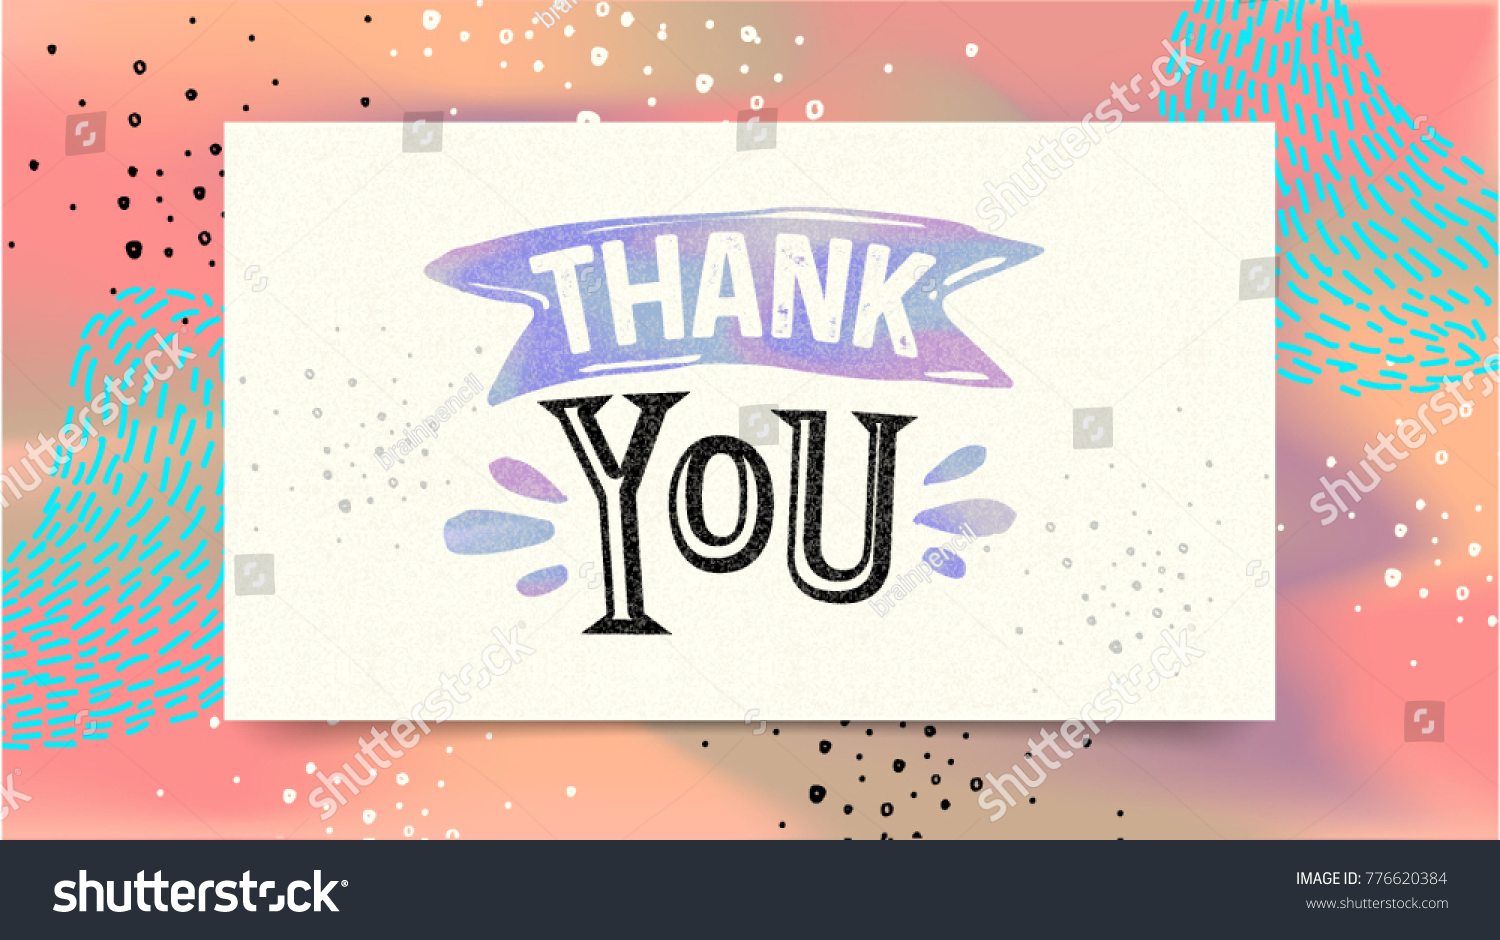 Thank you greeting card calligraphy text stock vector 776620384 thank you greeting card calligraphy text drawn invitation handwritten brush lettering memphis style kristyandbryce Images